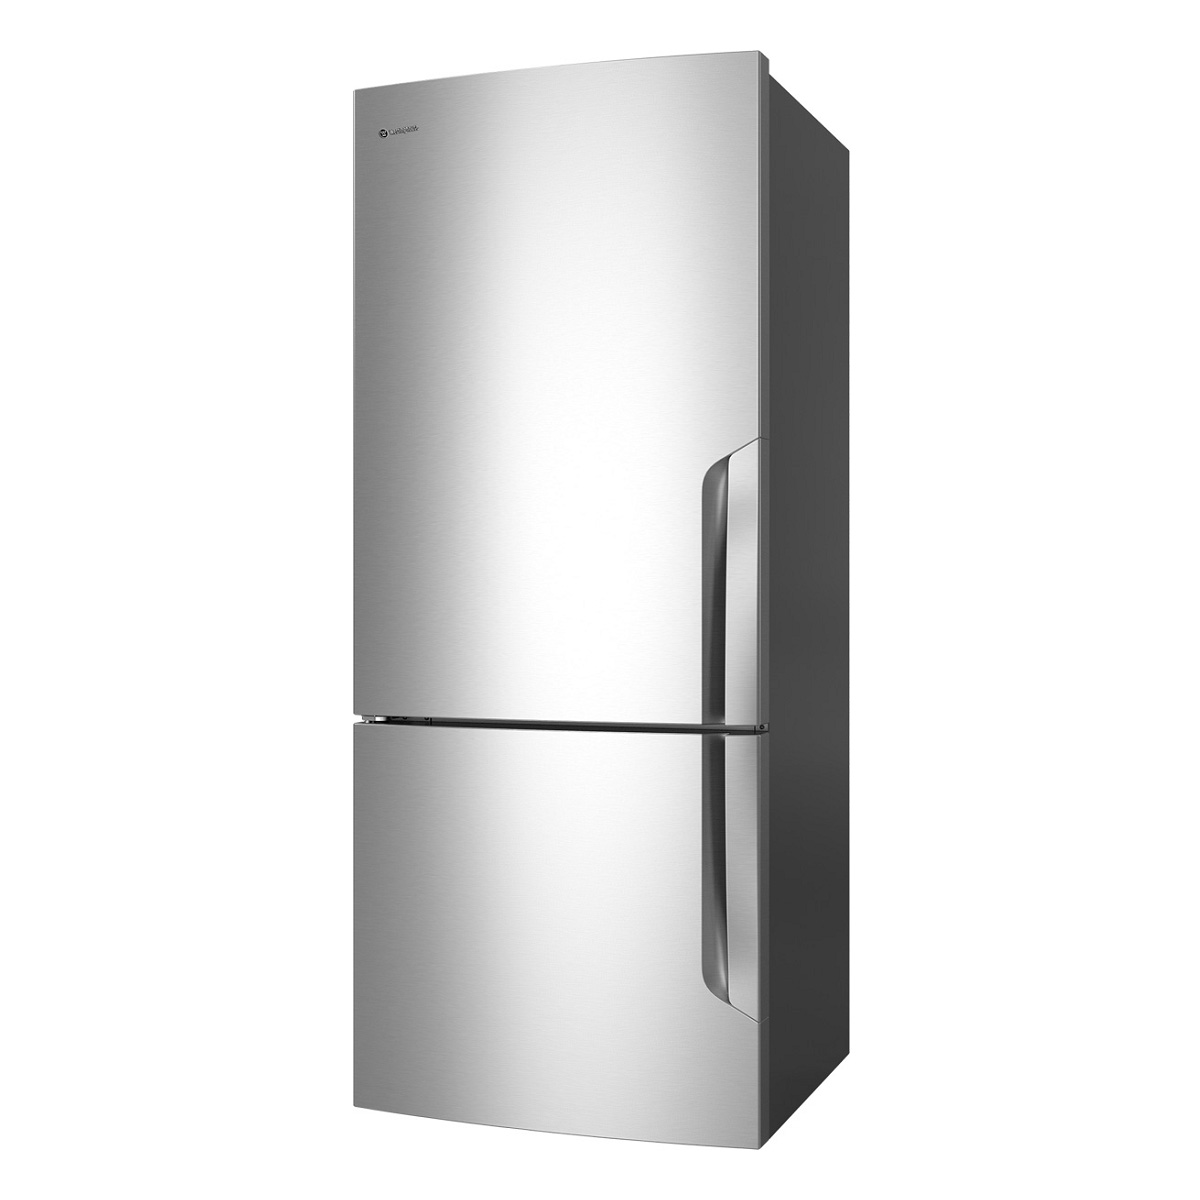 Westinghouse WBE4500SALH 455L Bottom Mount Fridge